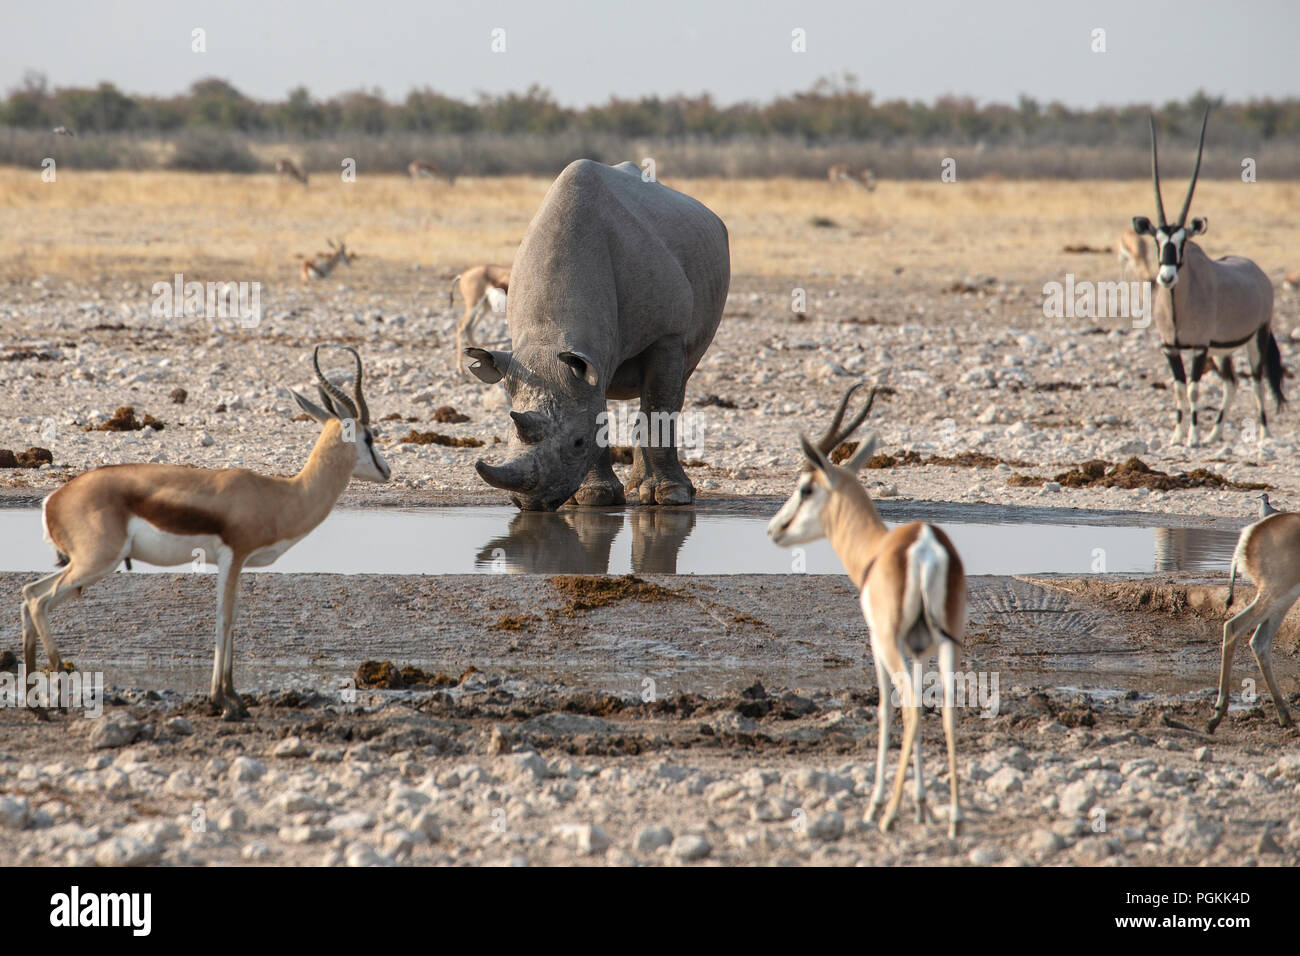 Black rhino or hook-lipped rhinoceros - Diceros bicornis - drinking at a waterhole with springbok and oryx looking on, in Etosha, Namibia. - Stock Image